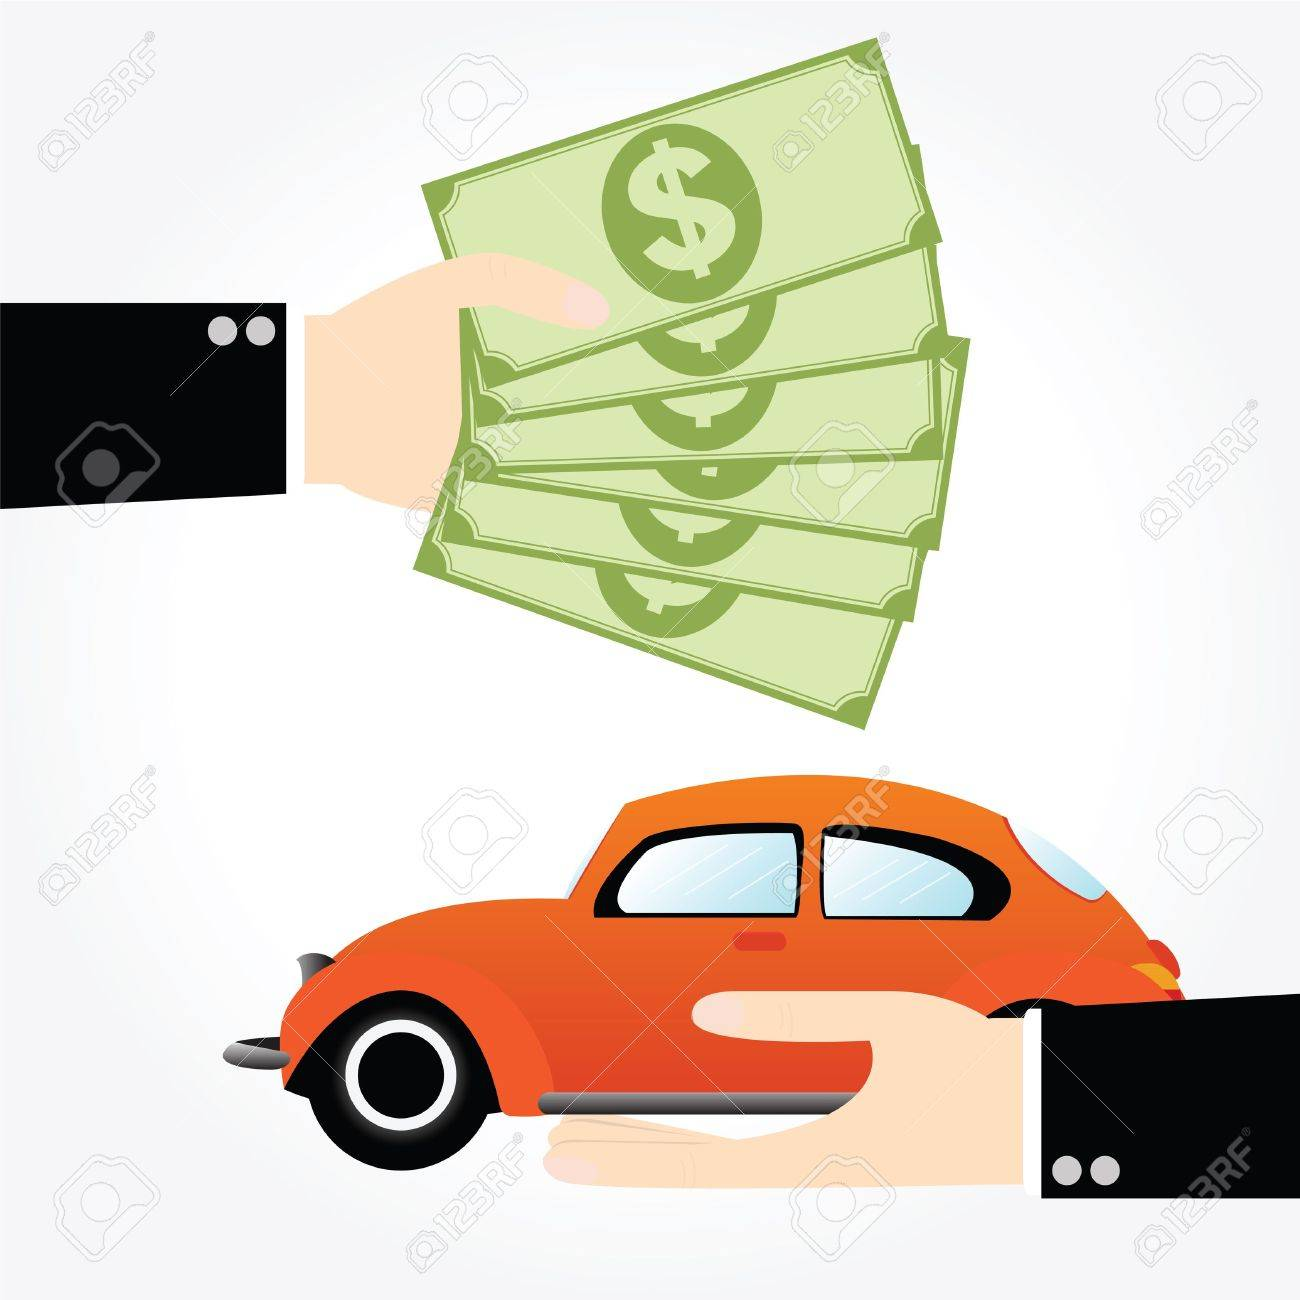 Business Exchange Money For Car Royalty Free Cliparts, Vectors ...